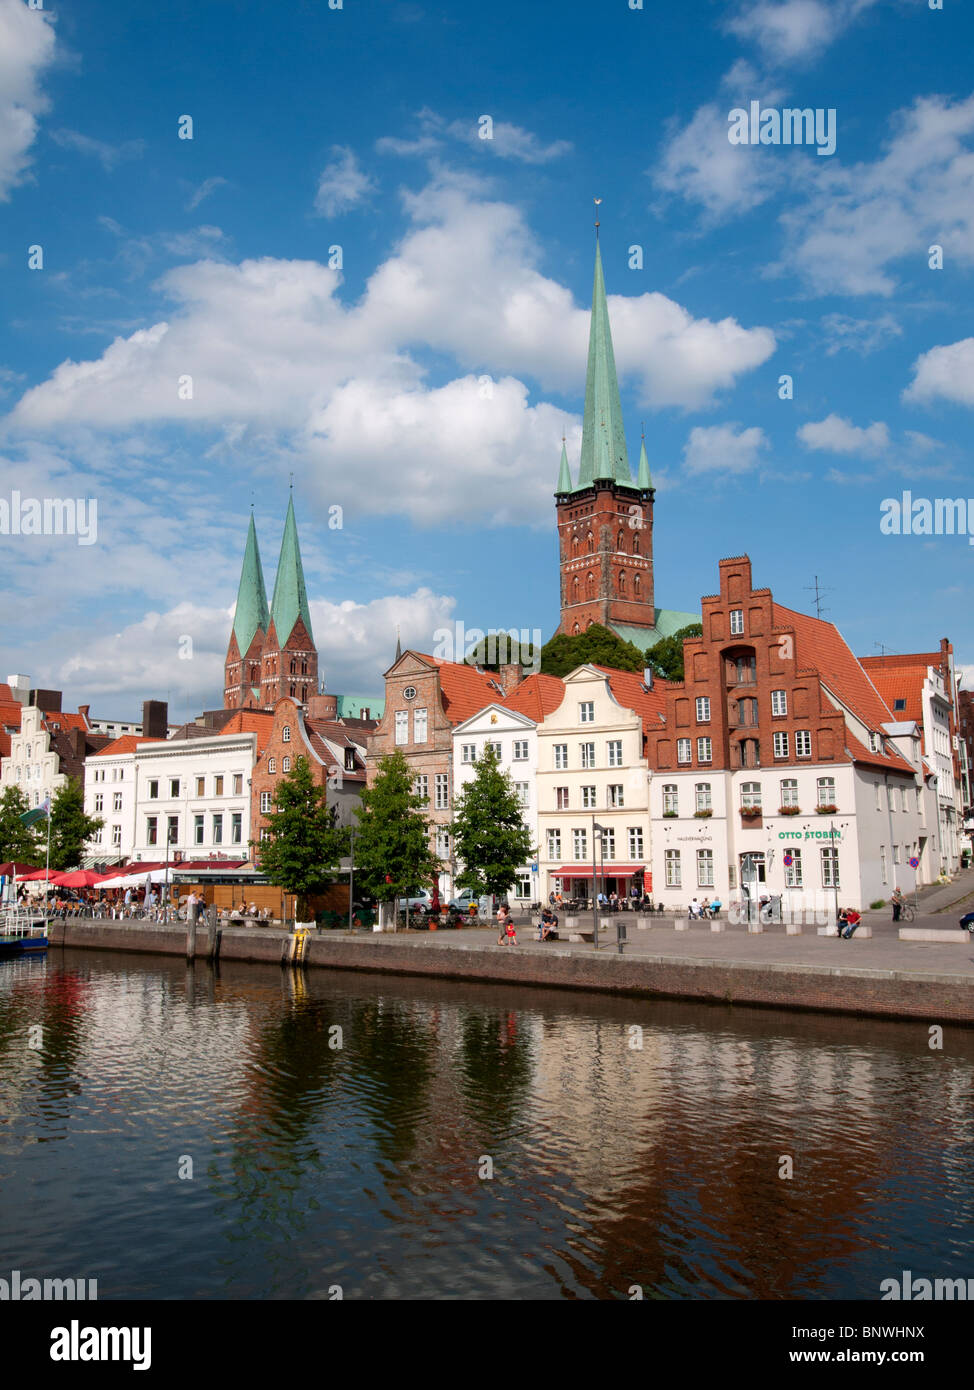 View of historic city of Lubeck in Germany - Stock Image